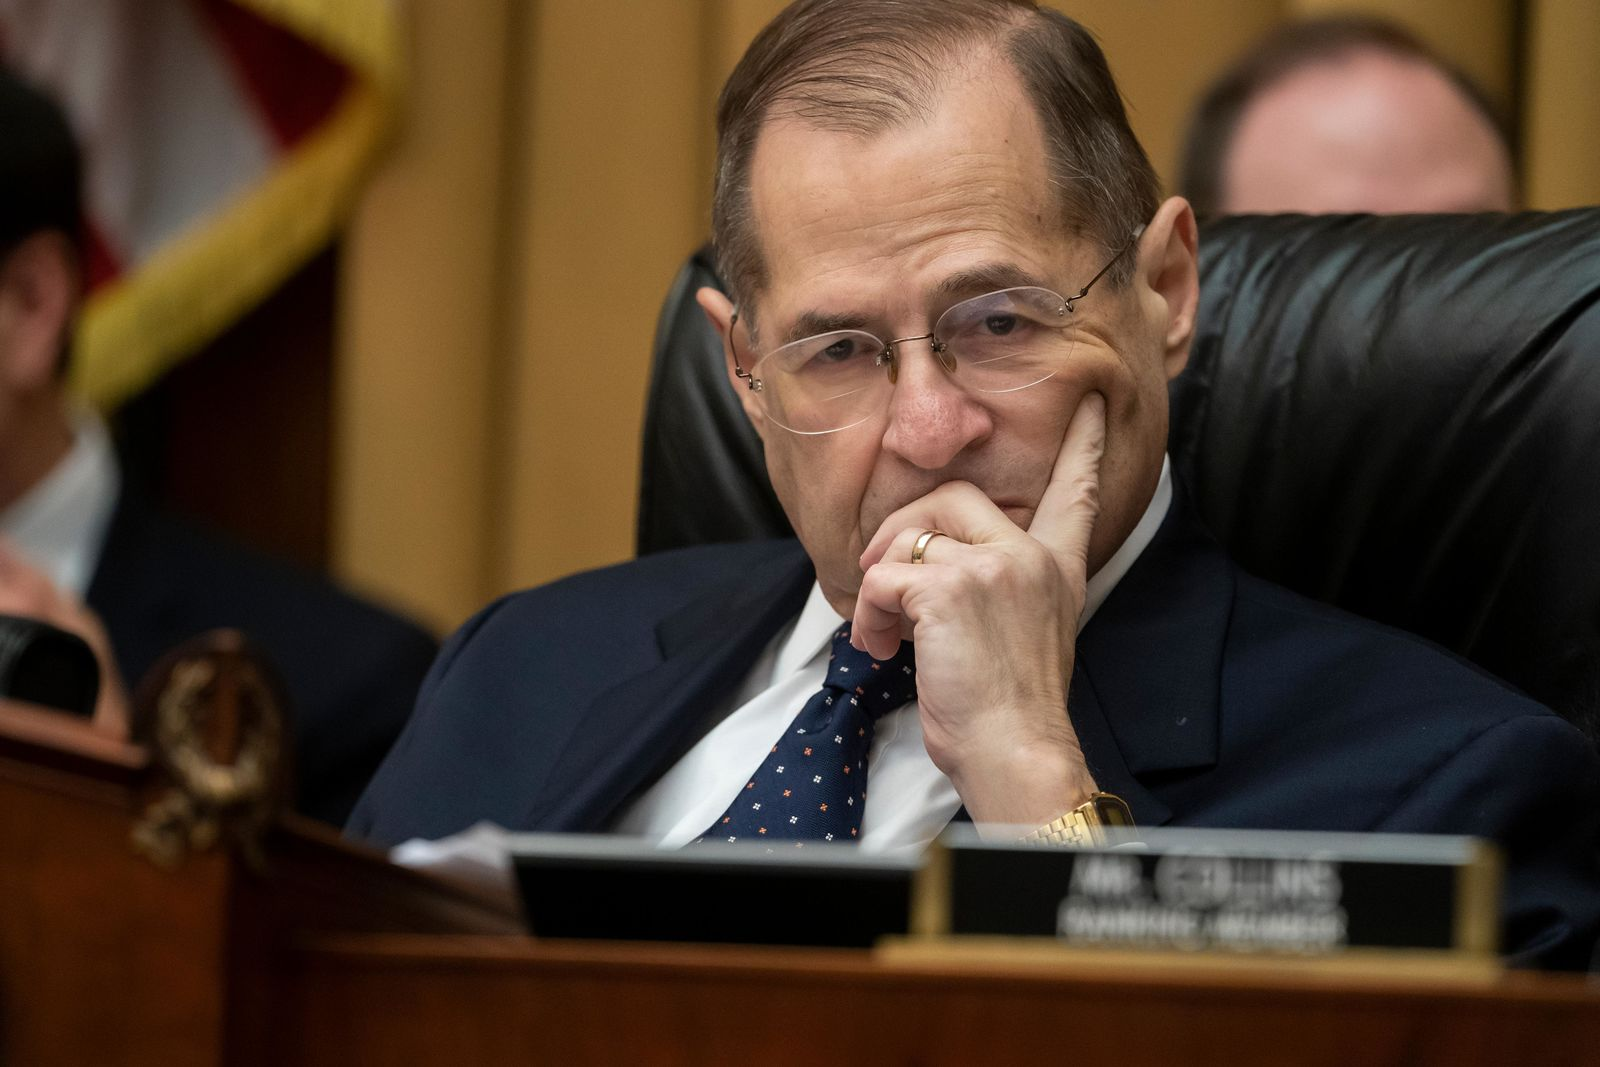 House Judiciary Committee Chair Jerrold Nadler, D-N.Y., moves ahead with a vote to hold Attorney General William Barr in contempt of Congress after last-minute negotiations stalled with the Justice Department over access to the full, unredacted version of special counsel Robert Mueller's report. (AP Photo/J. Scott Applewhite)